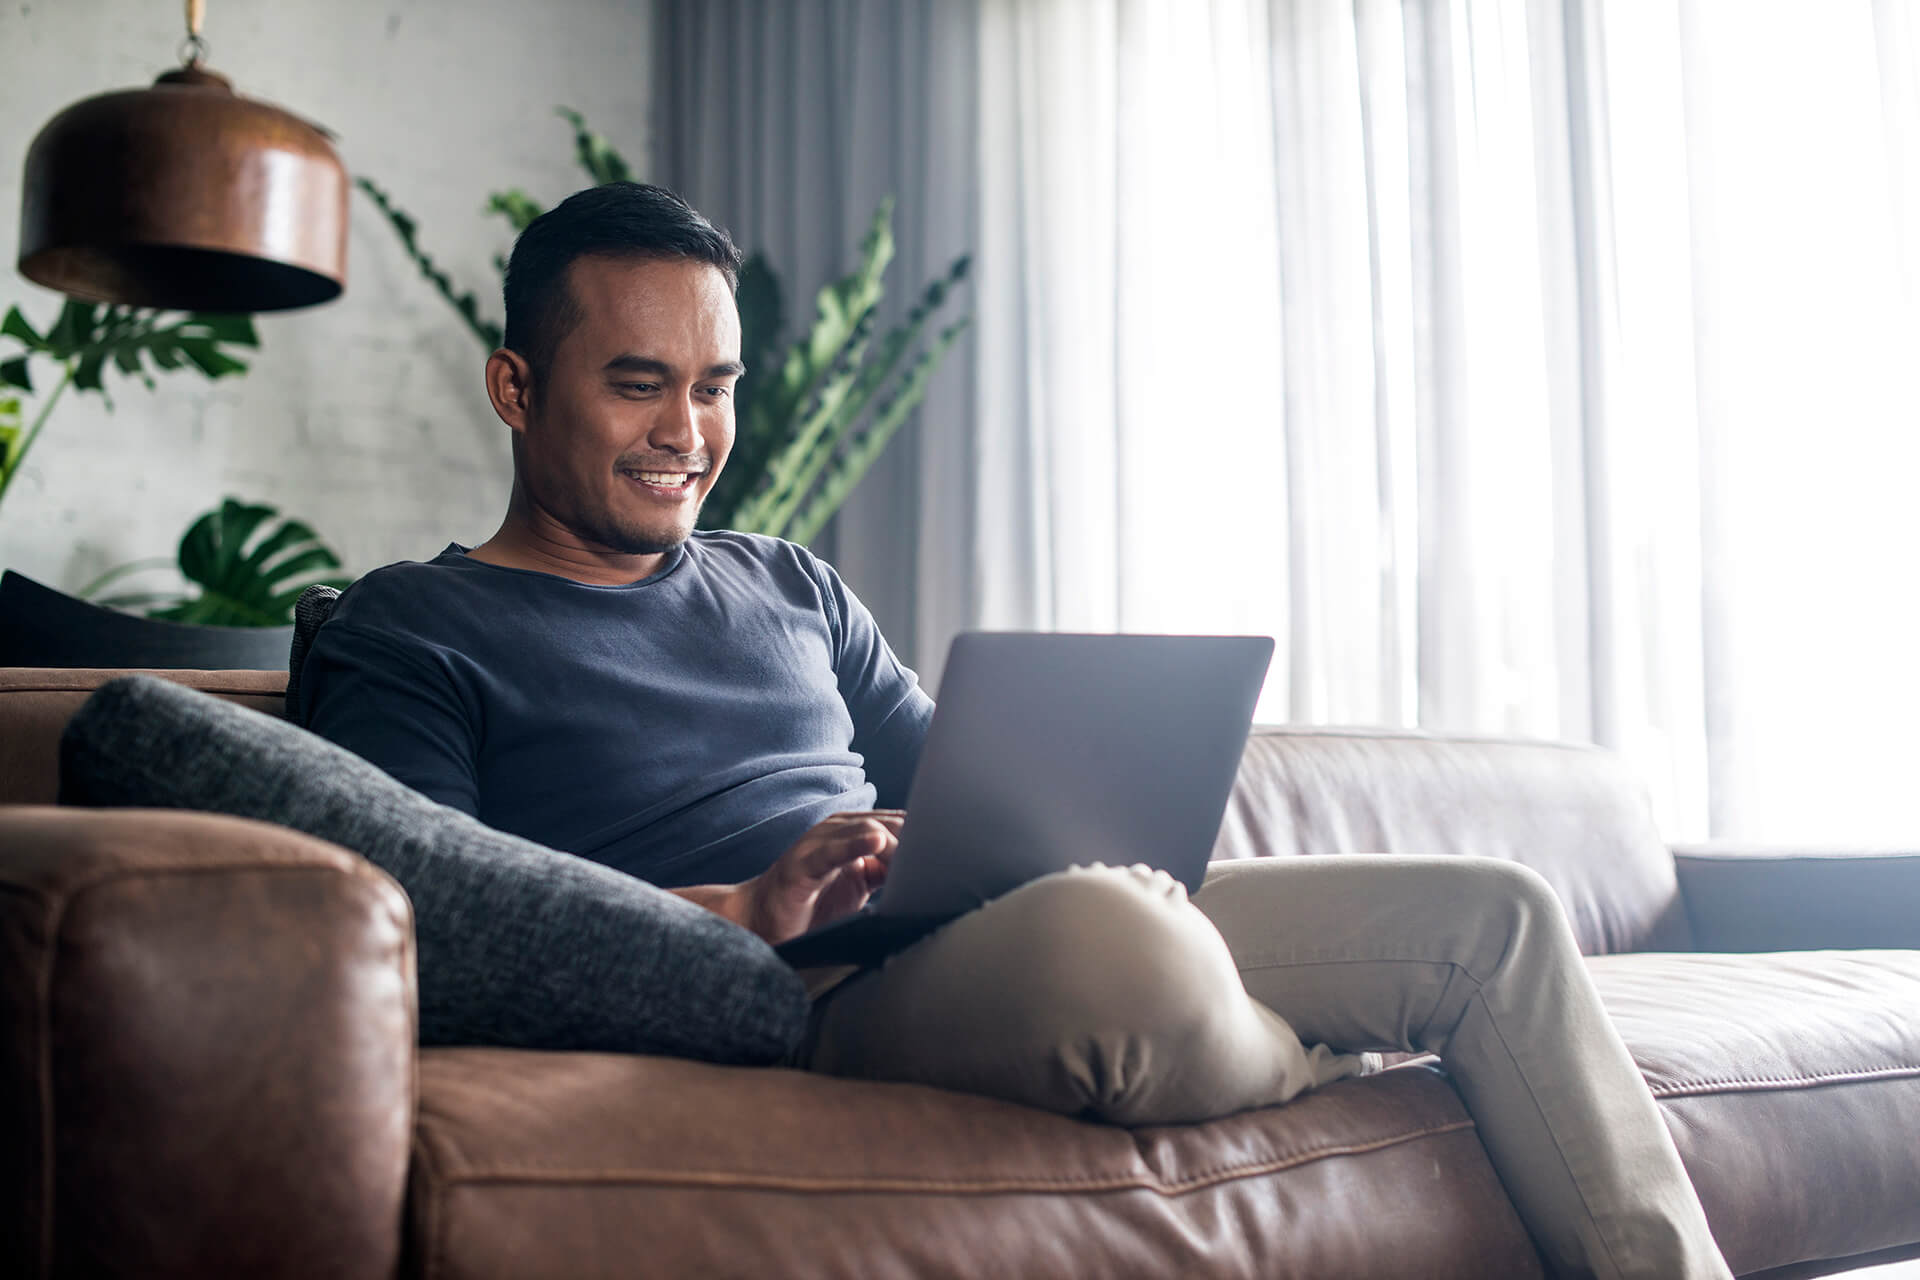 Young adult male relaxing on a couch using his laptop computer